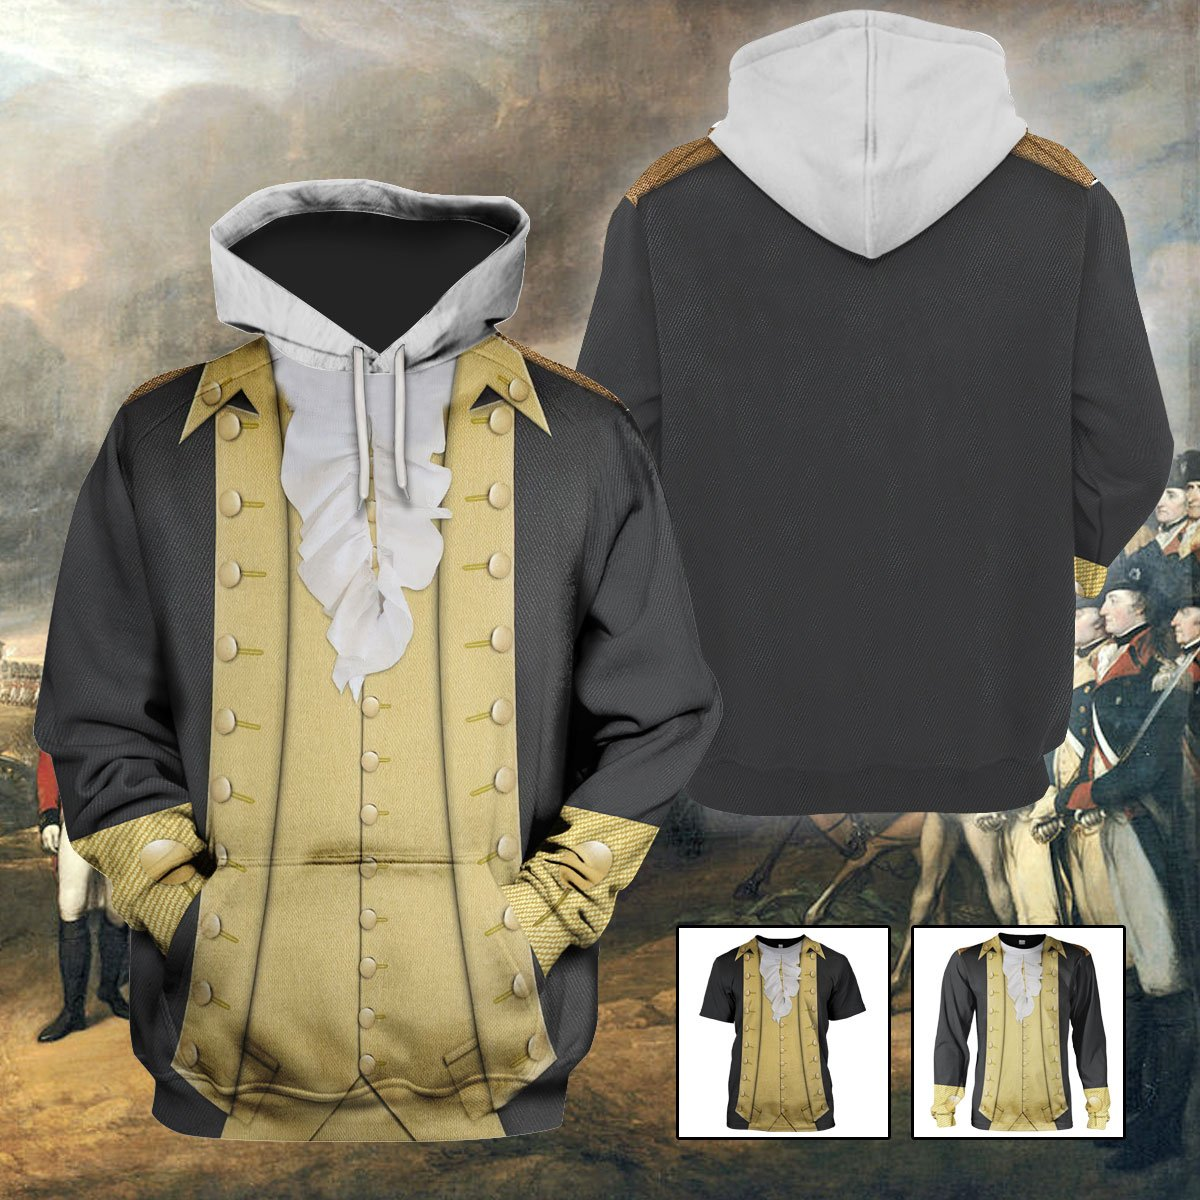 3D 1776 Costume - Sons of Liberty - George Washington